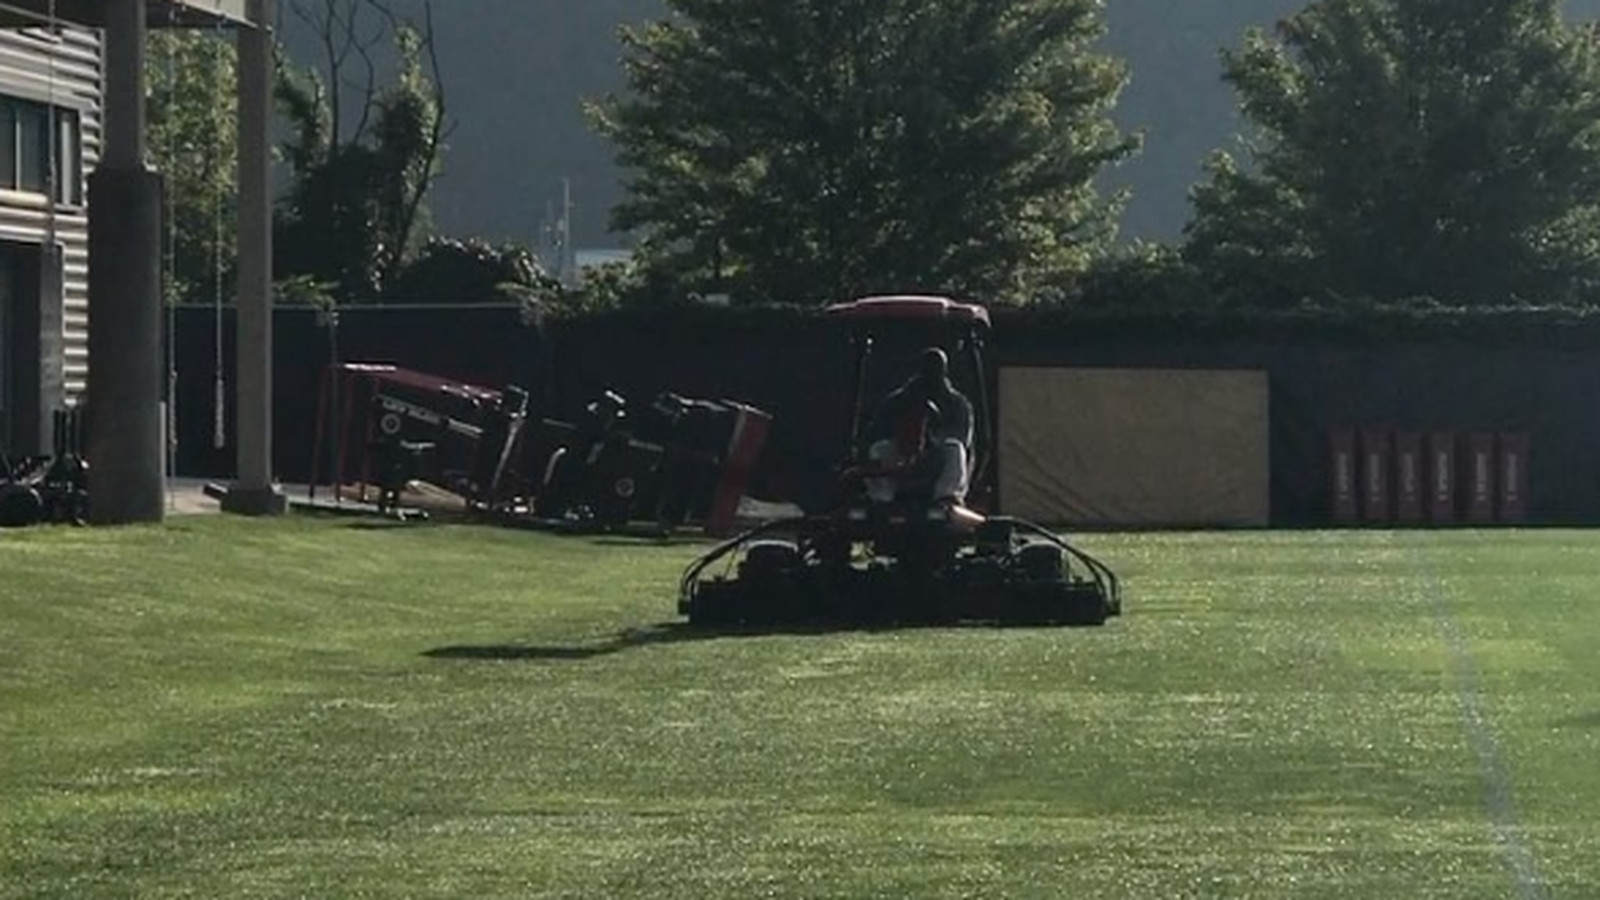 James Harrison does it all. Lifts thousands of pounds, sacks QBs and even cuts the grass